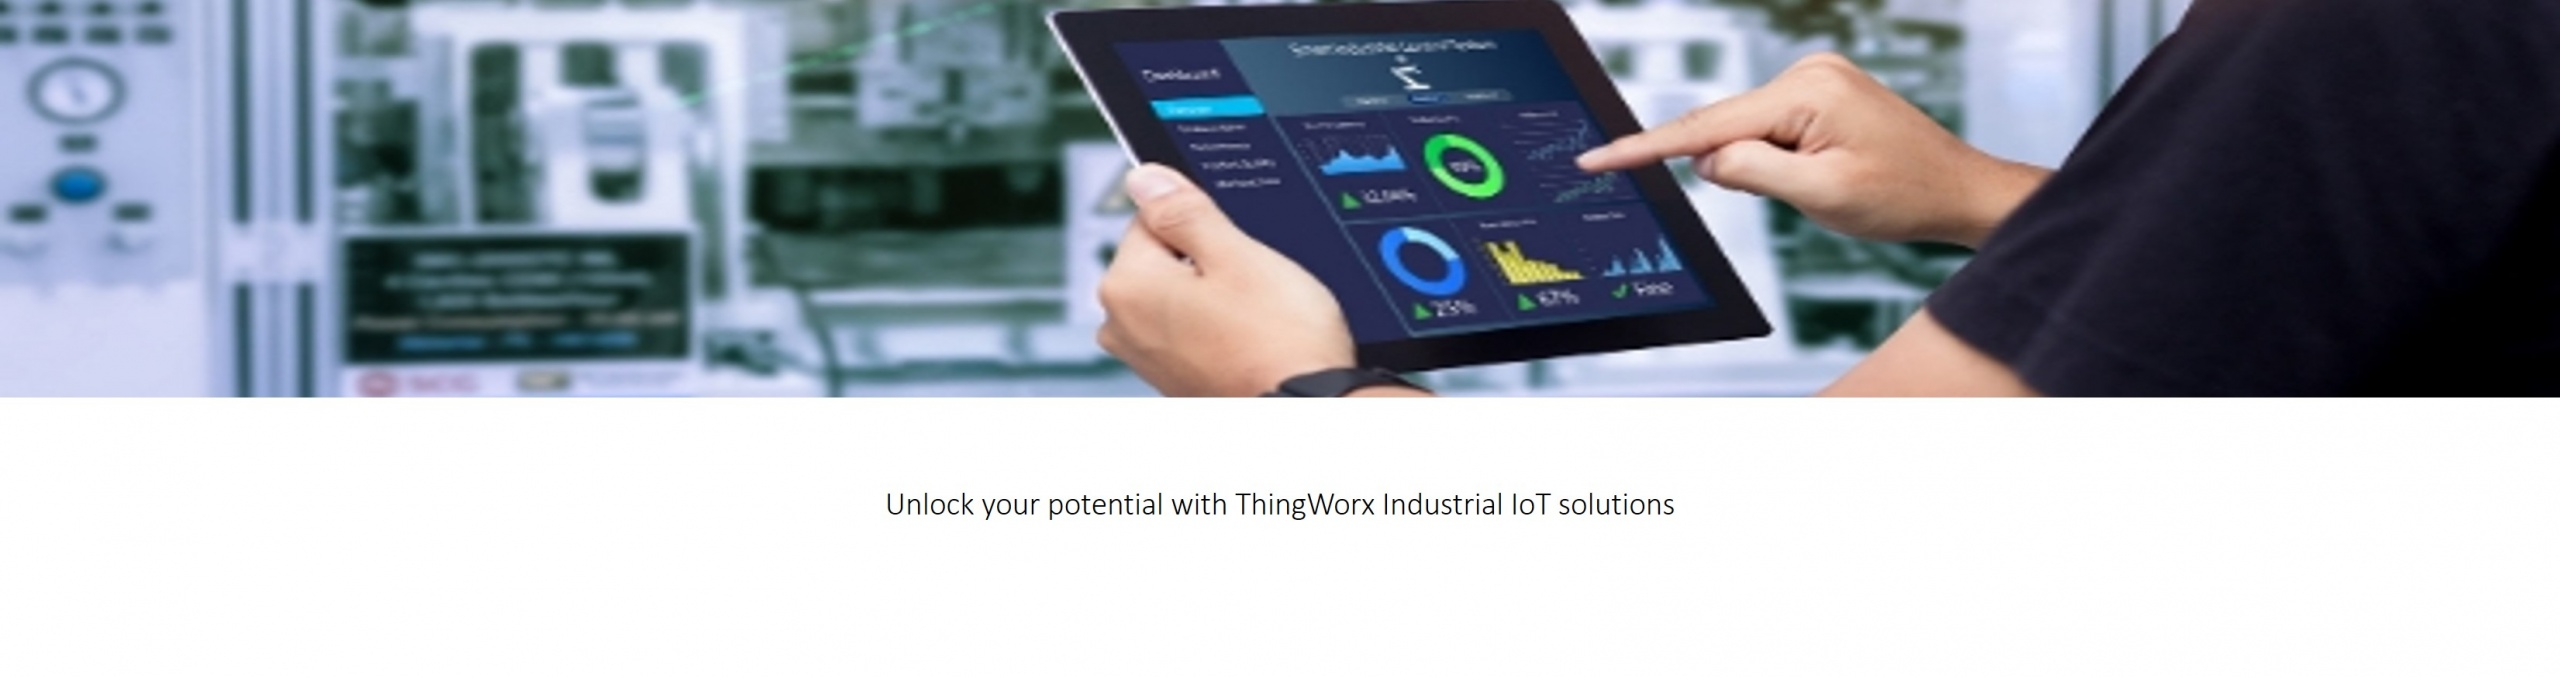 Unlock your potential with a IIoT solutions V1.2